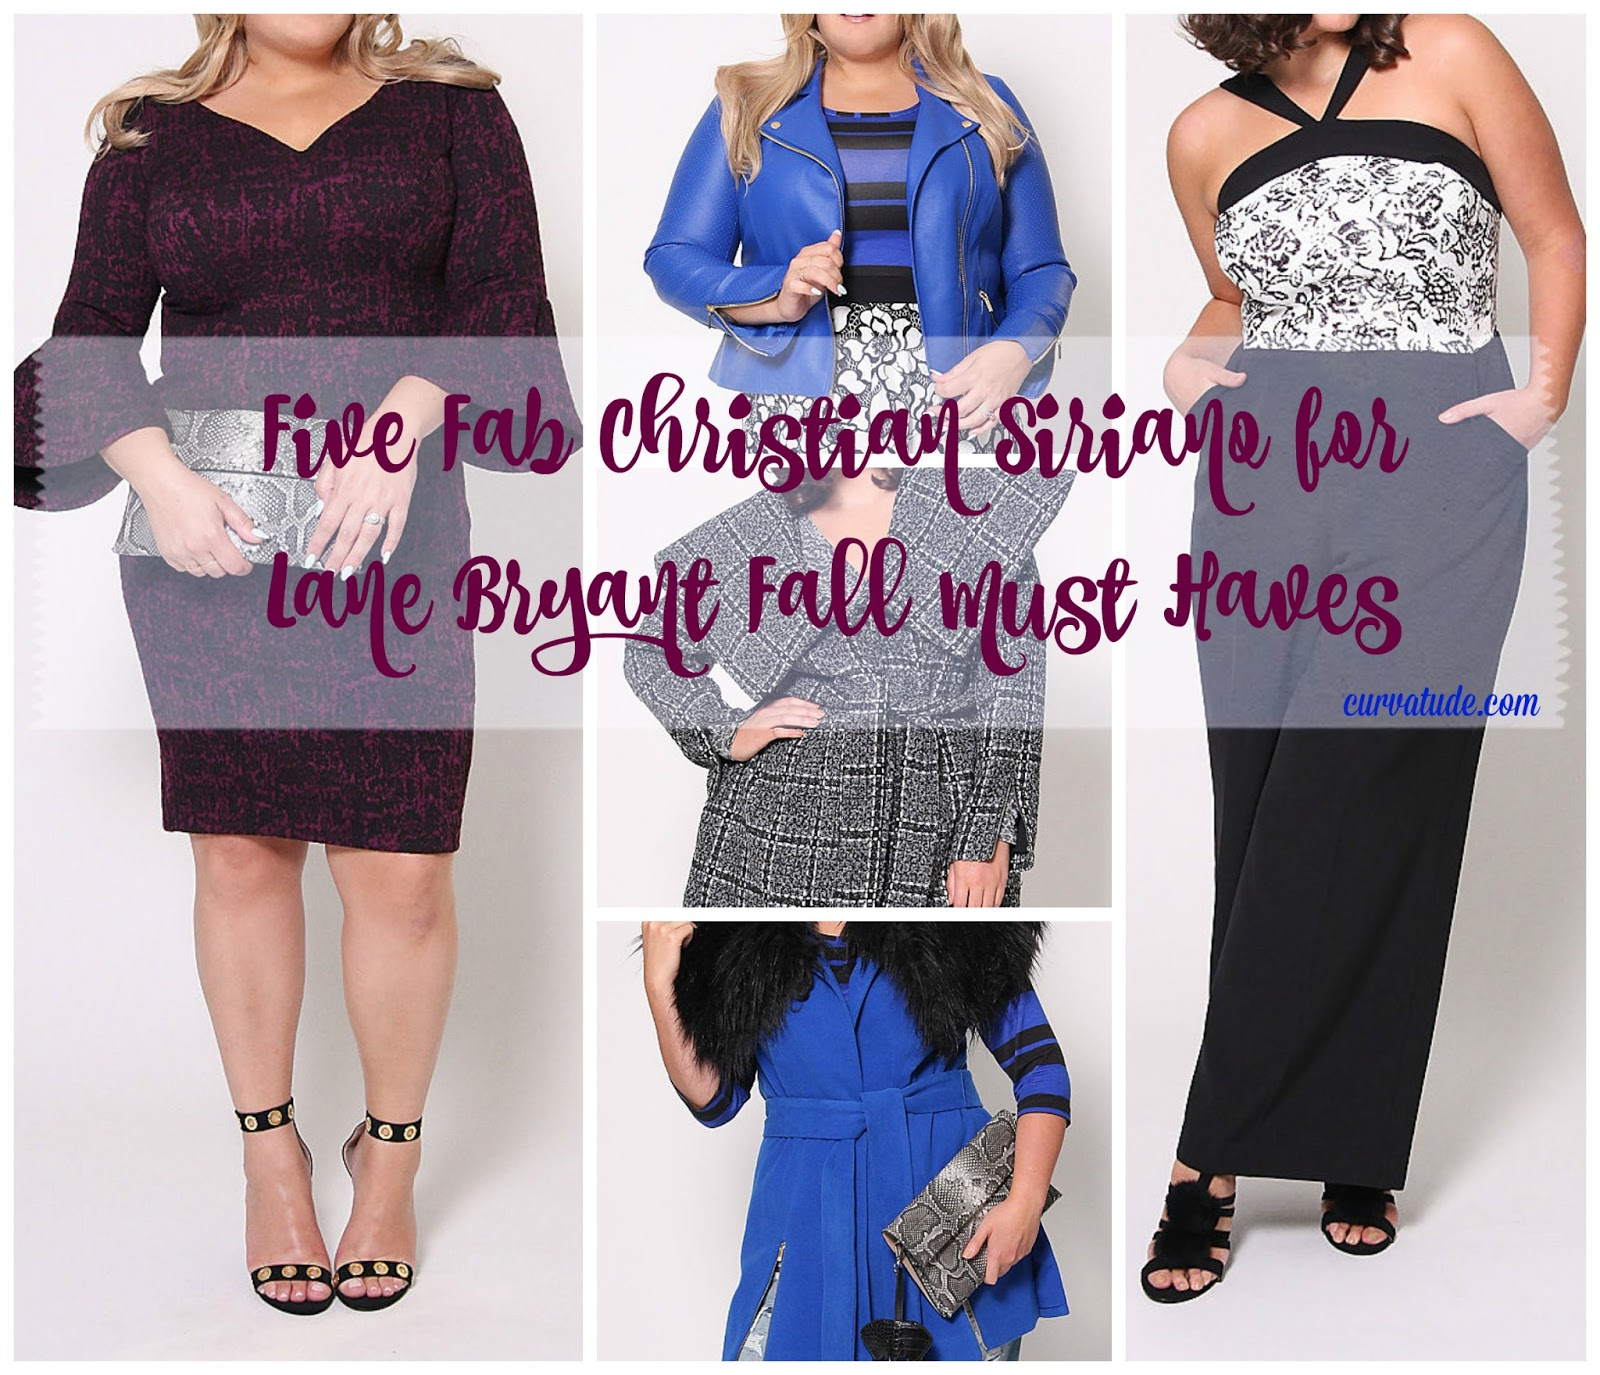 c365f48cdf5  Five Fab  Christian Siriano for Lane Bryant Fall Collection Must Haves •  Curvatude